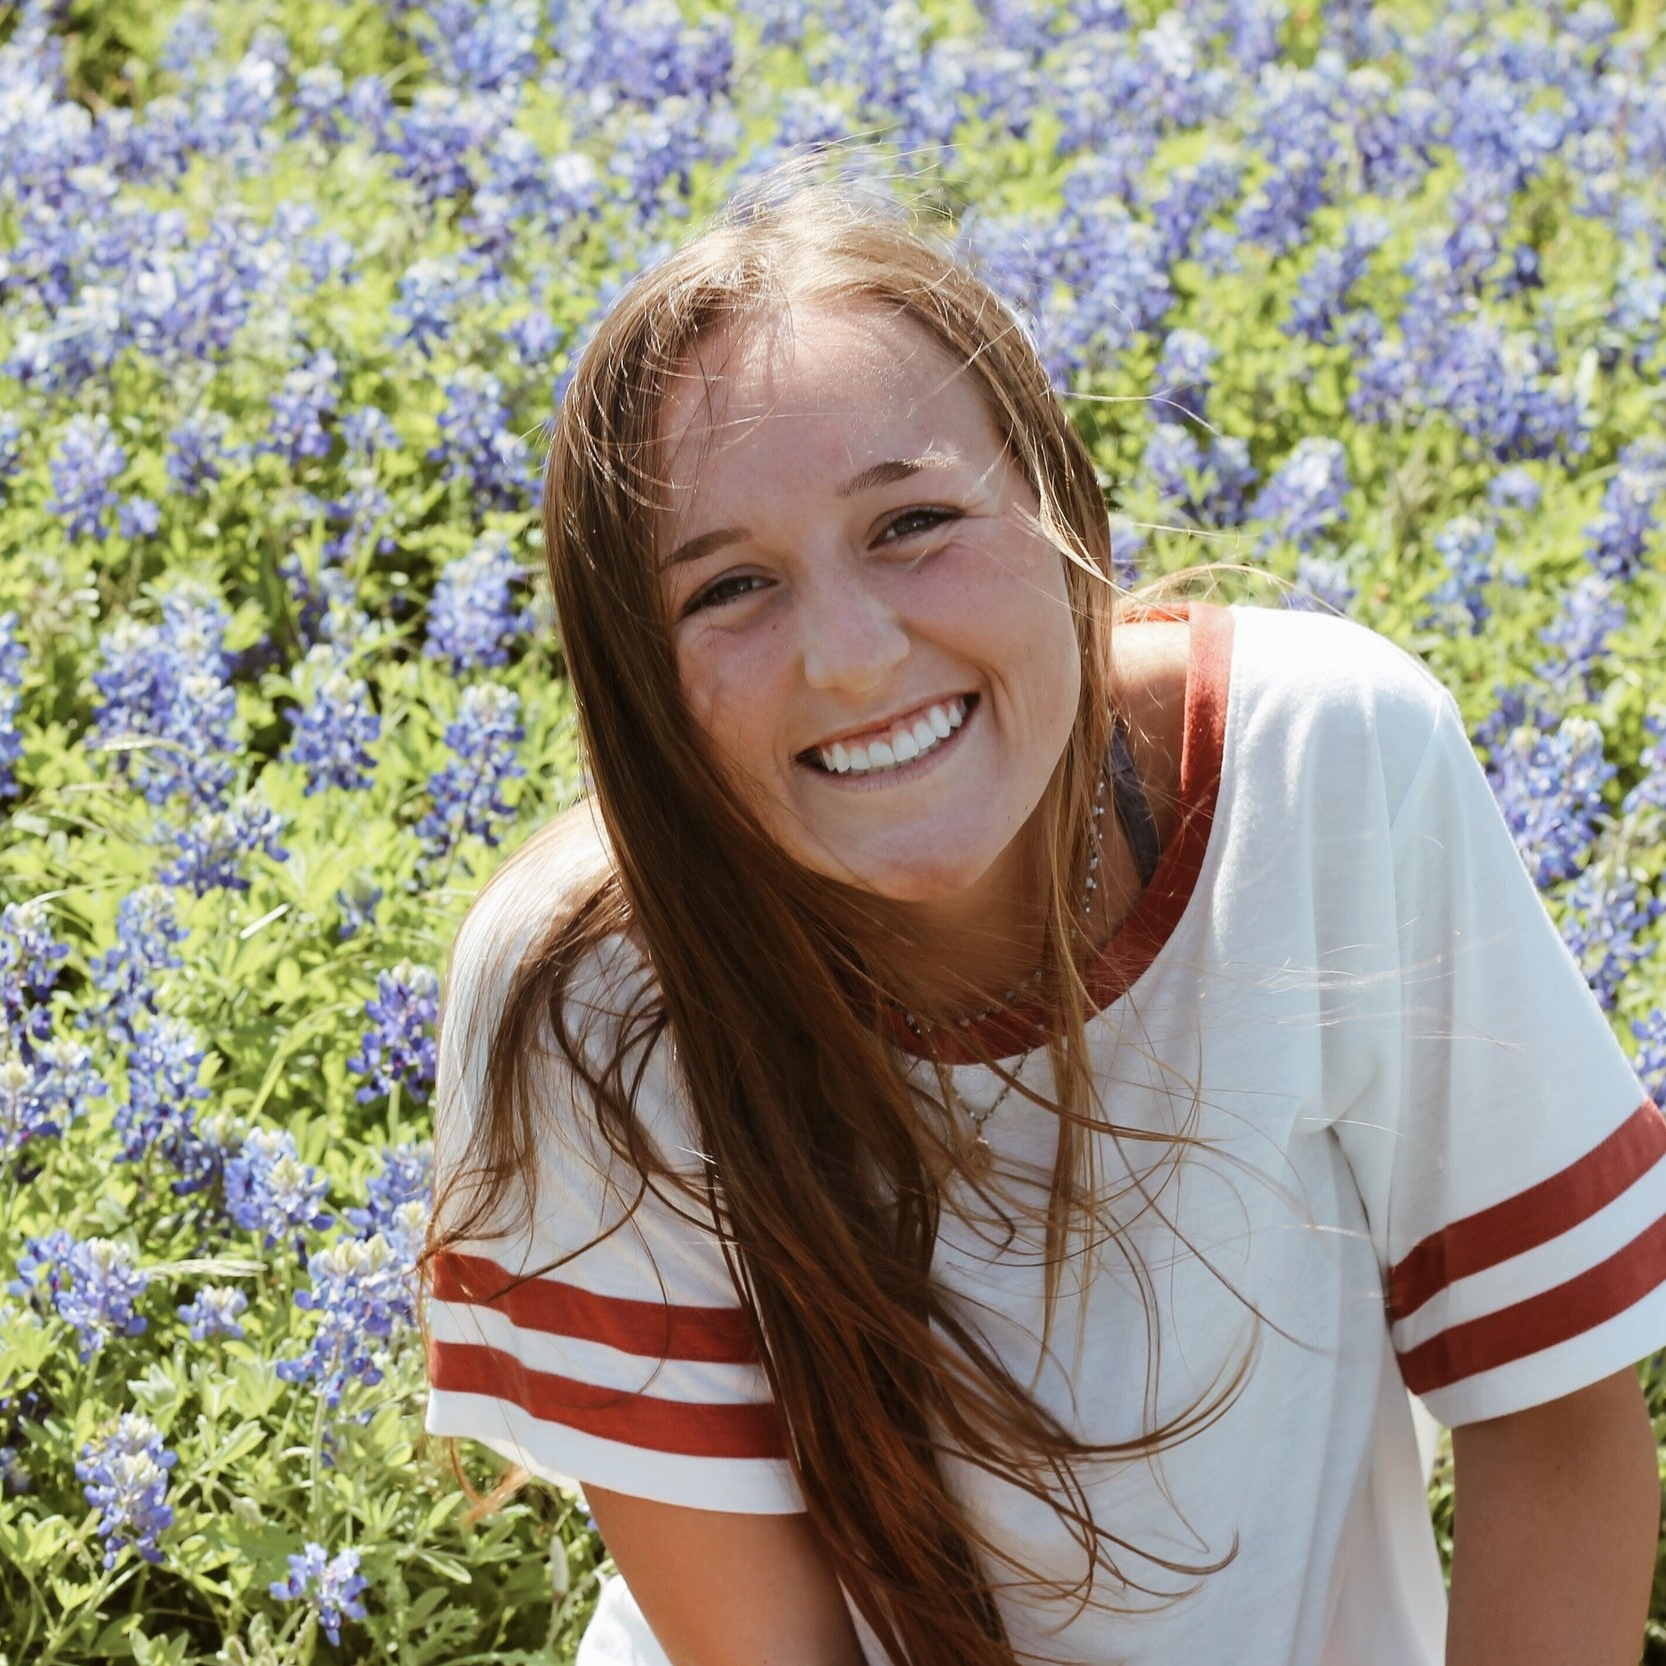 GRACE HODO - Hey everybody! I'm Grace and I'm a Junior PR Major at Baylor University, I never take myself too seriously and love being around friends. I take pictures and eat a lot of spaghetti! Let's do this thing!Waco, TX